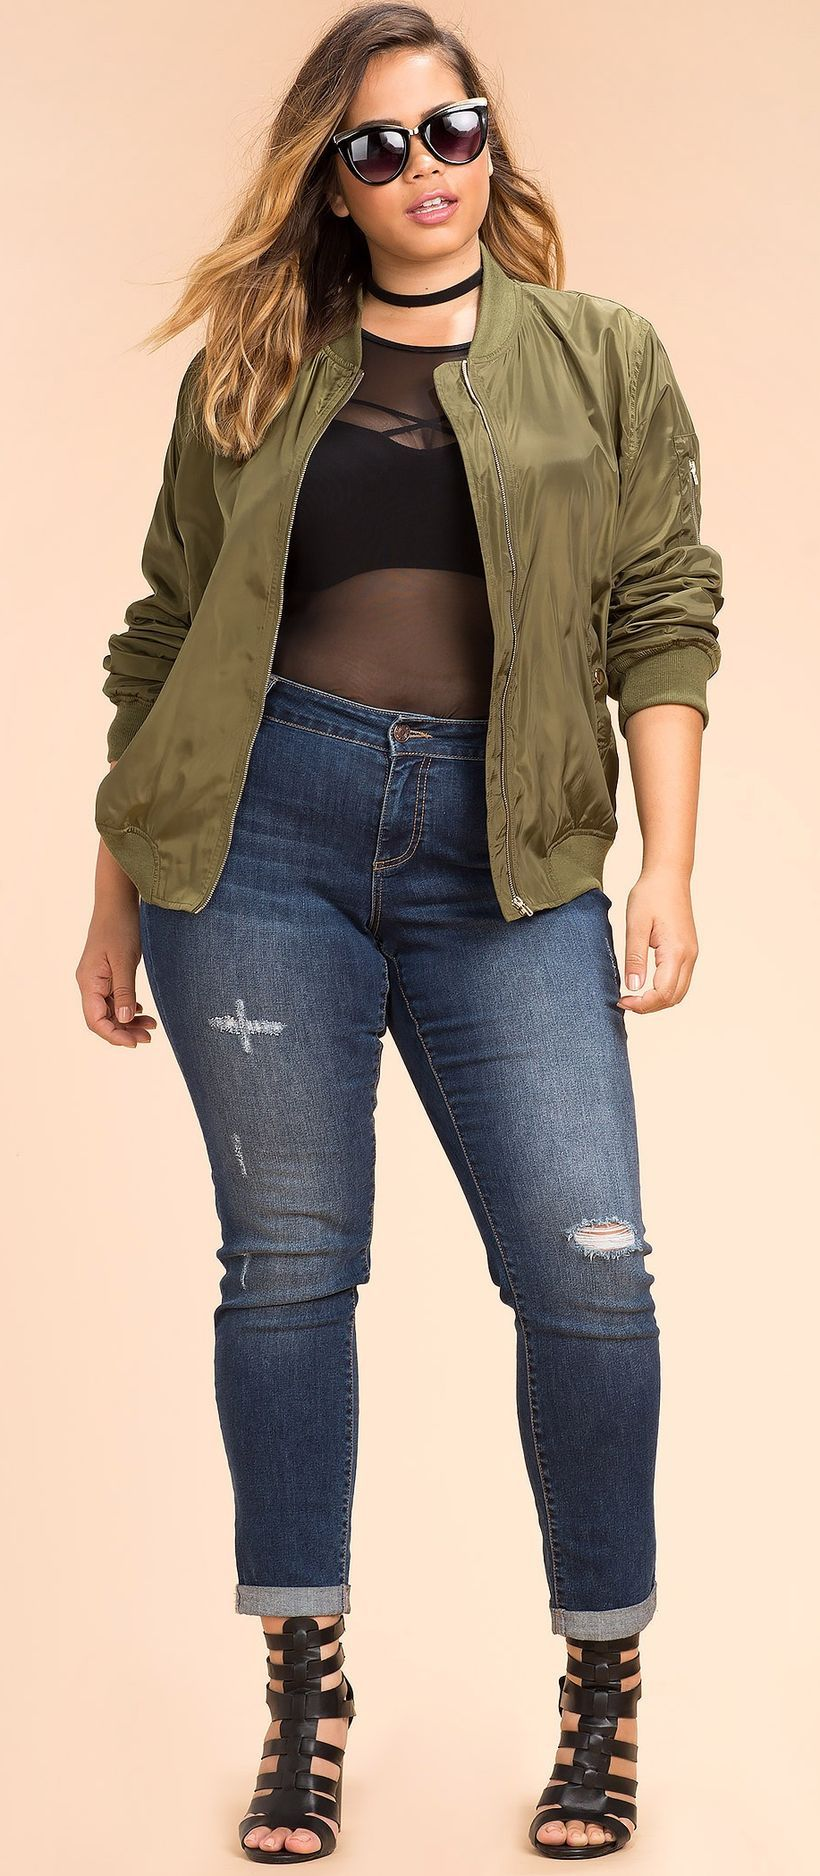 aec06ad15b3ff 130 Stylish Plus Size Outfits Ideas for Winter 2017 that You Must Try  https